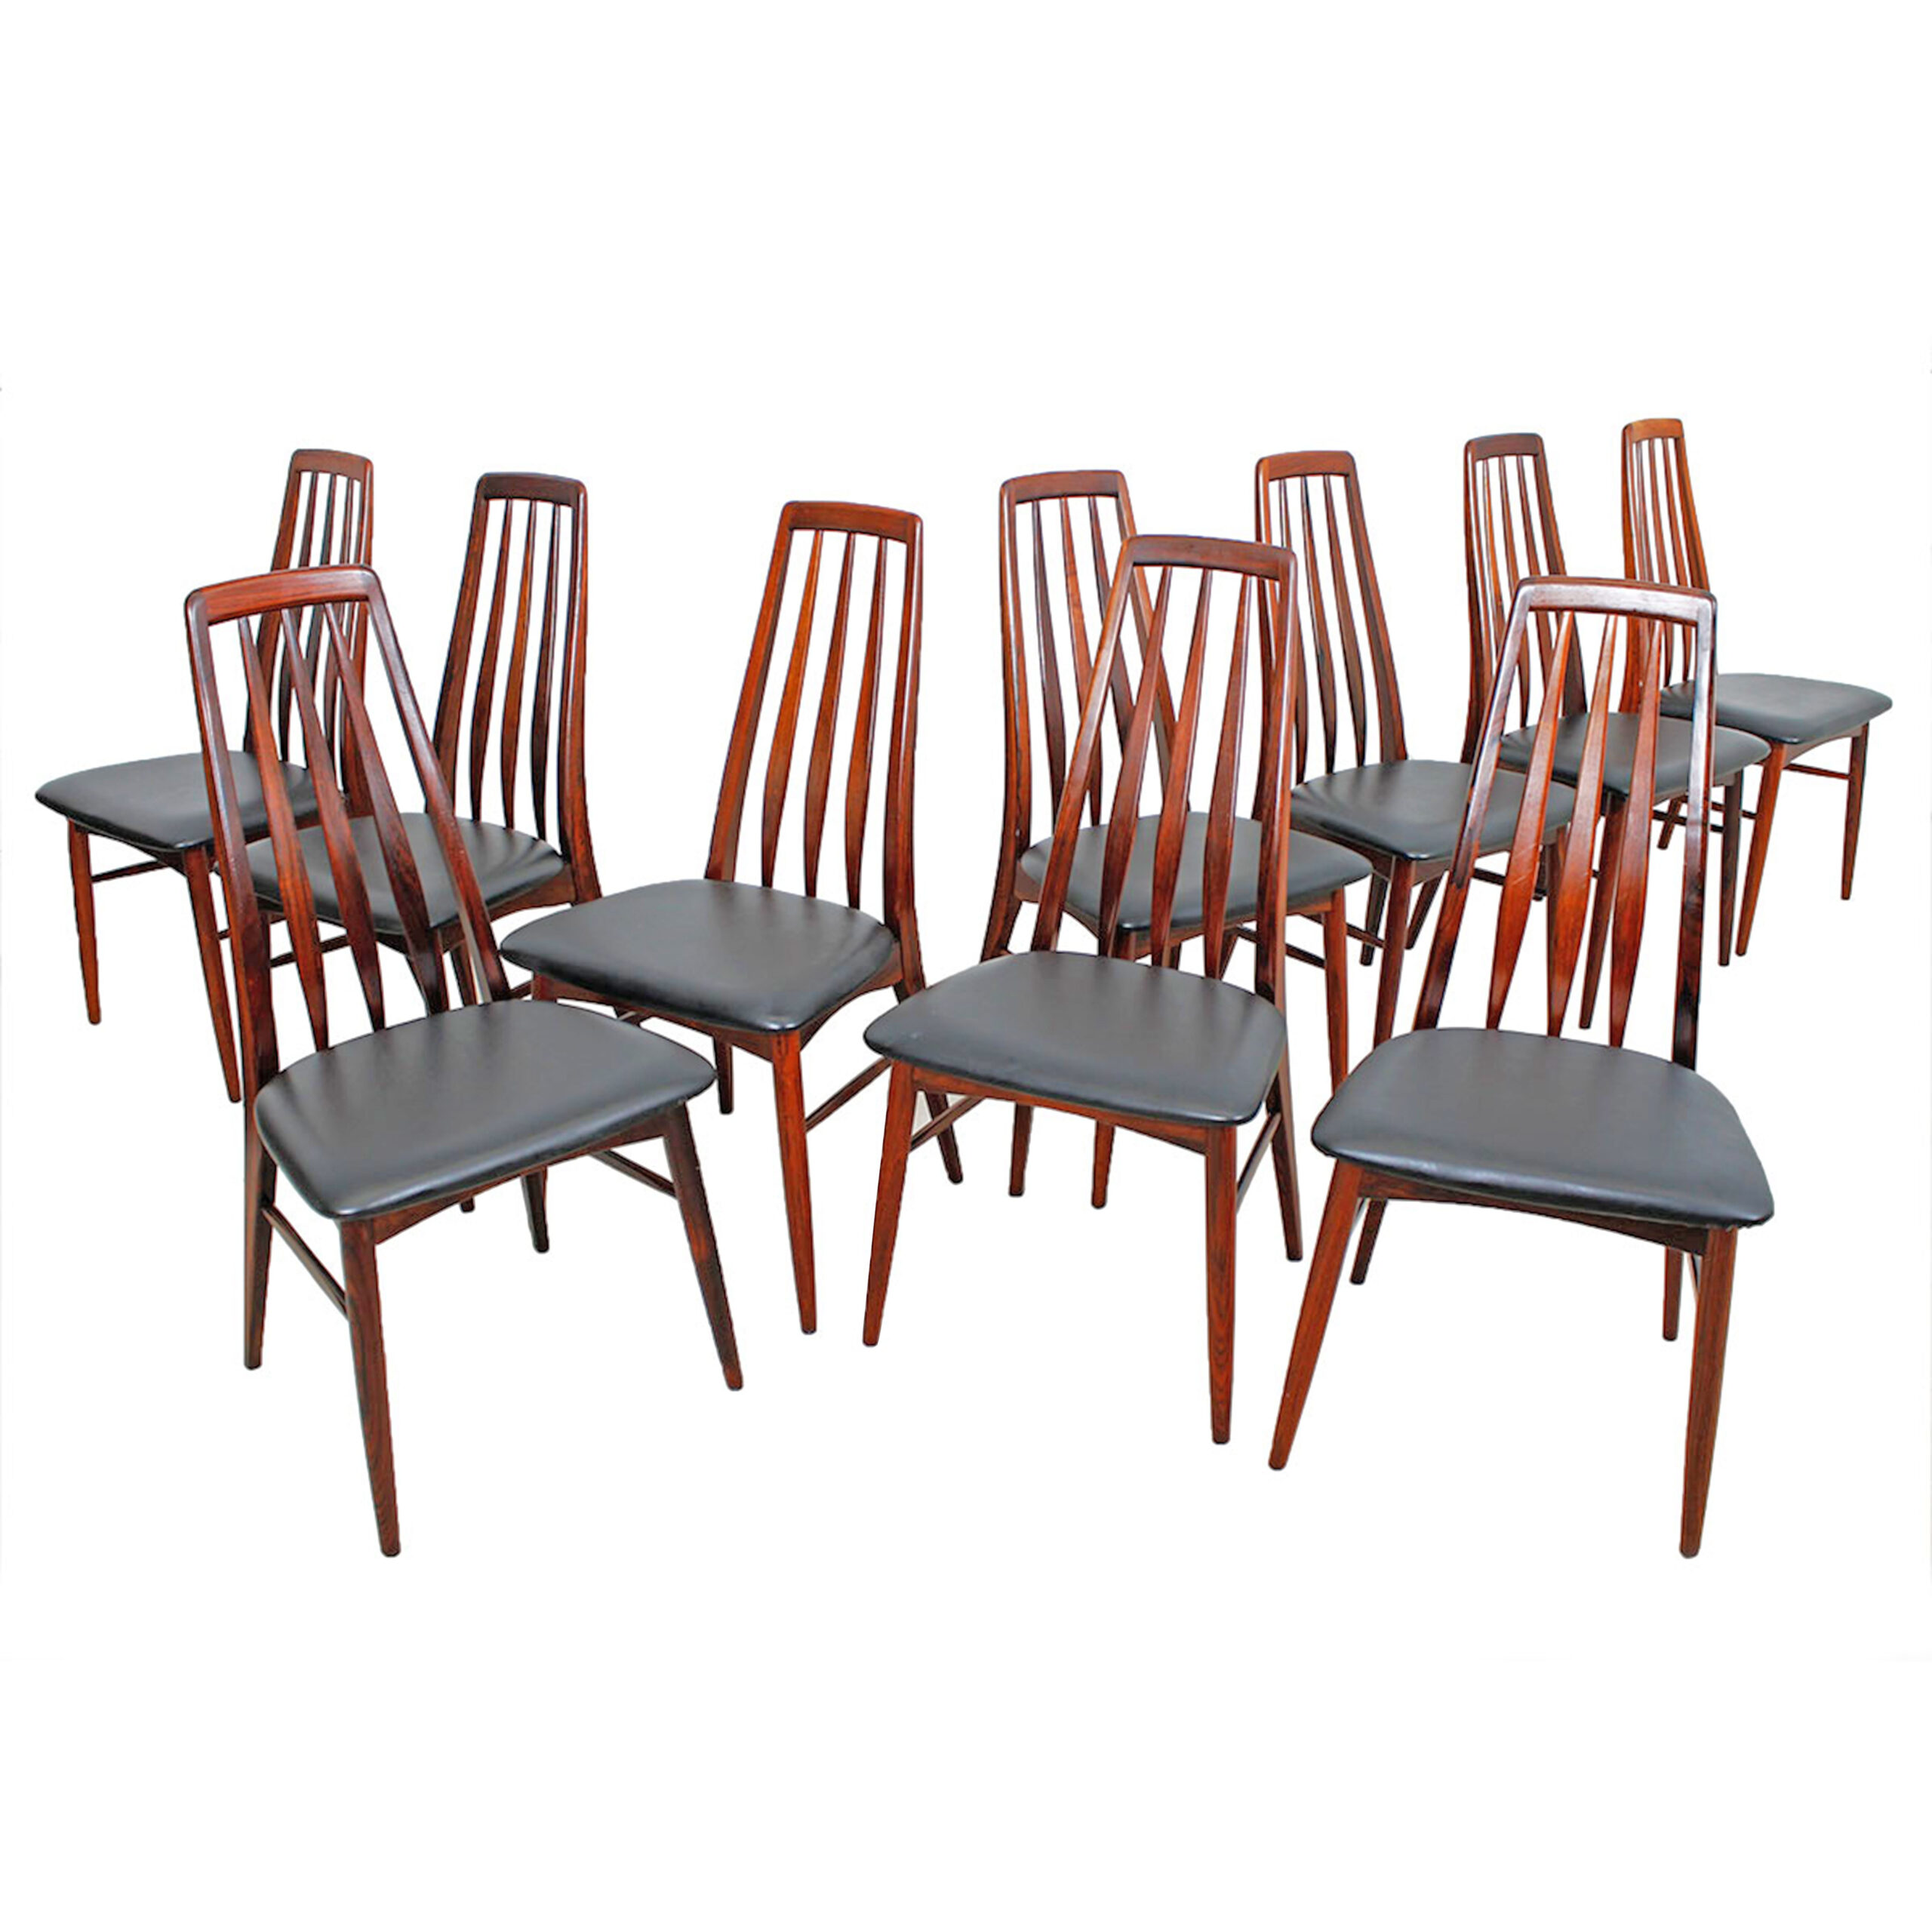 Stunning Set of 10 Danish Rosewood Dining Chairs